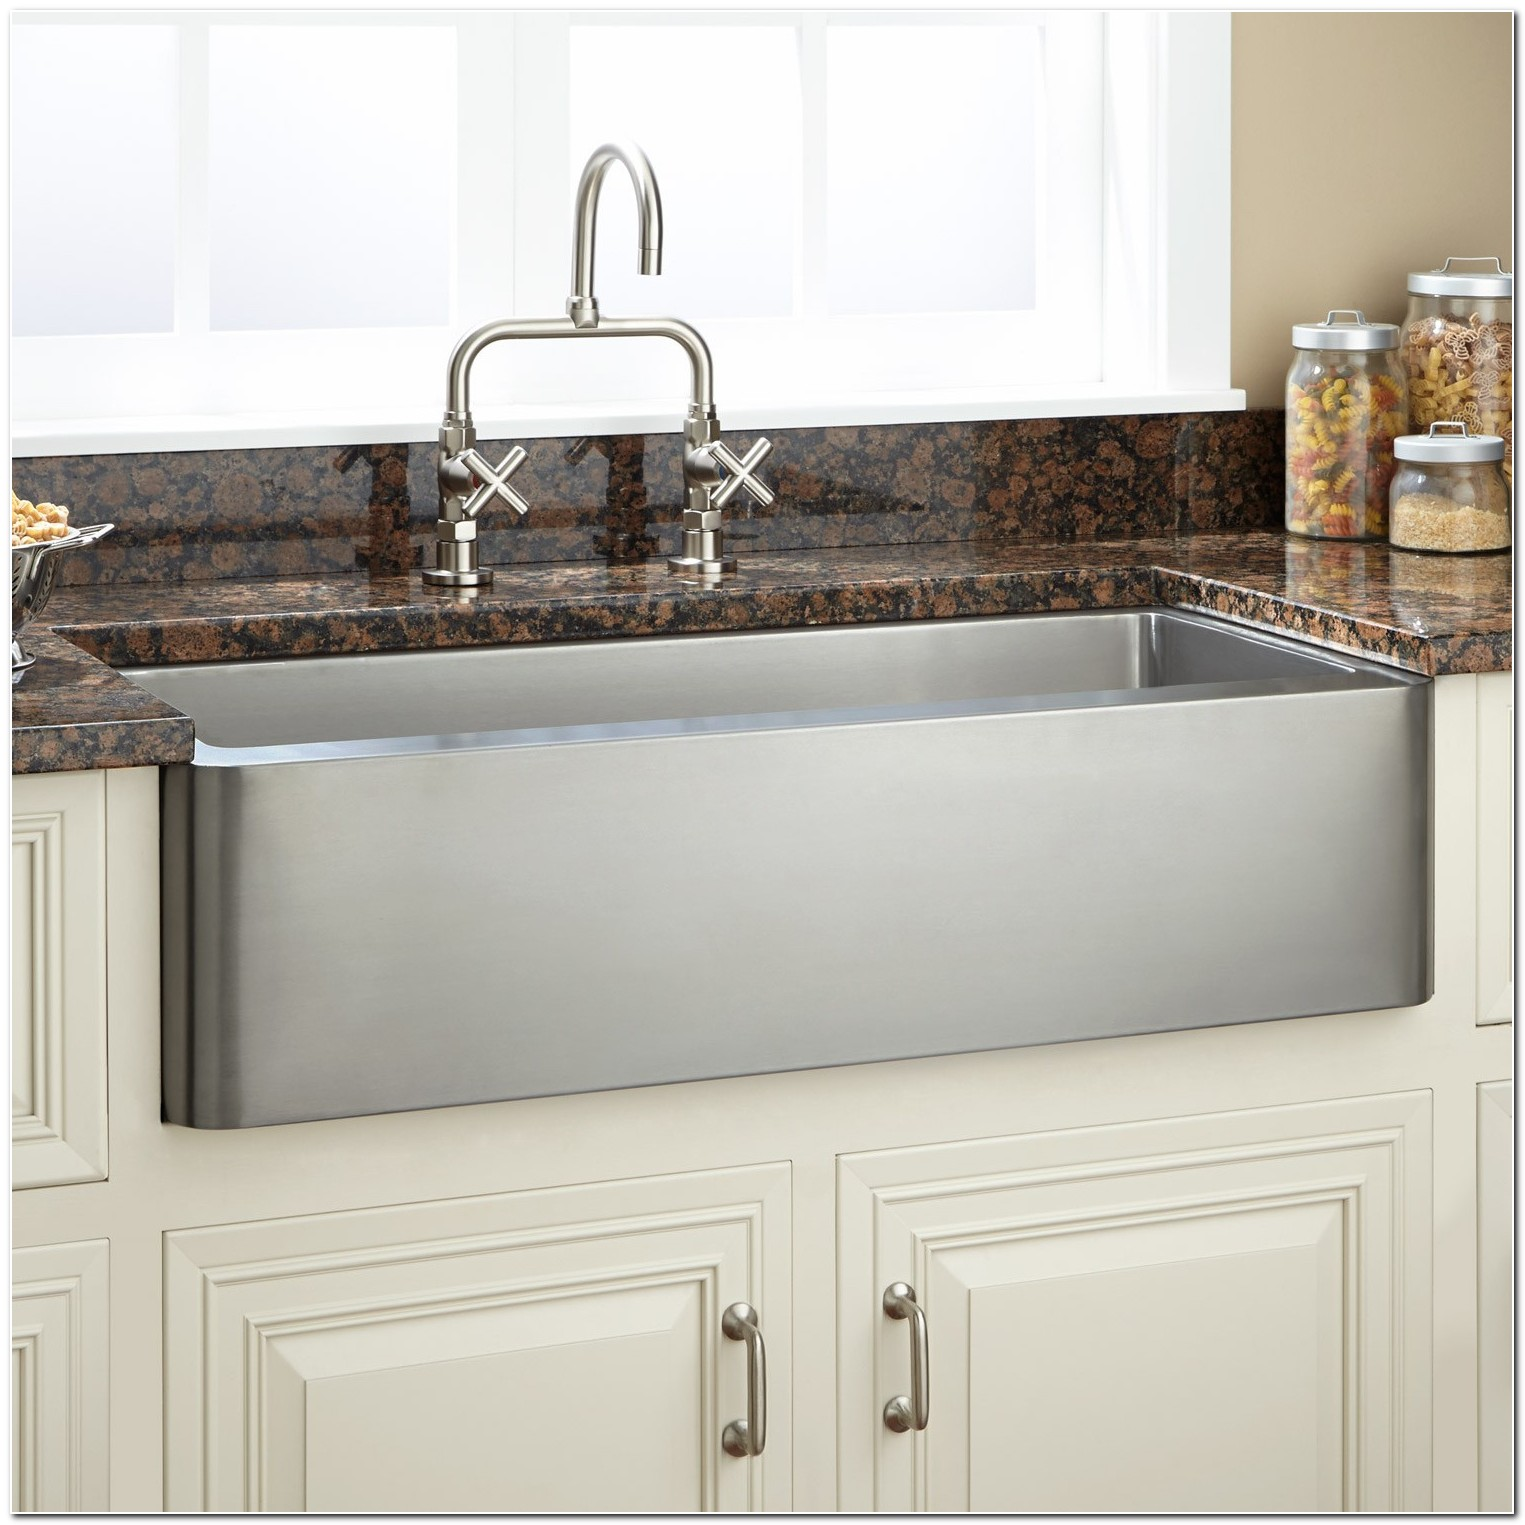 33 Farmhouse Stainless Steel Sink